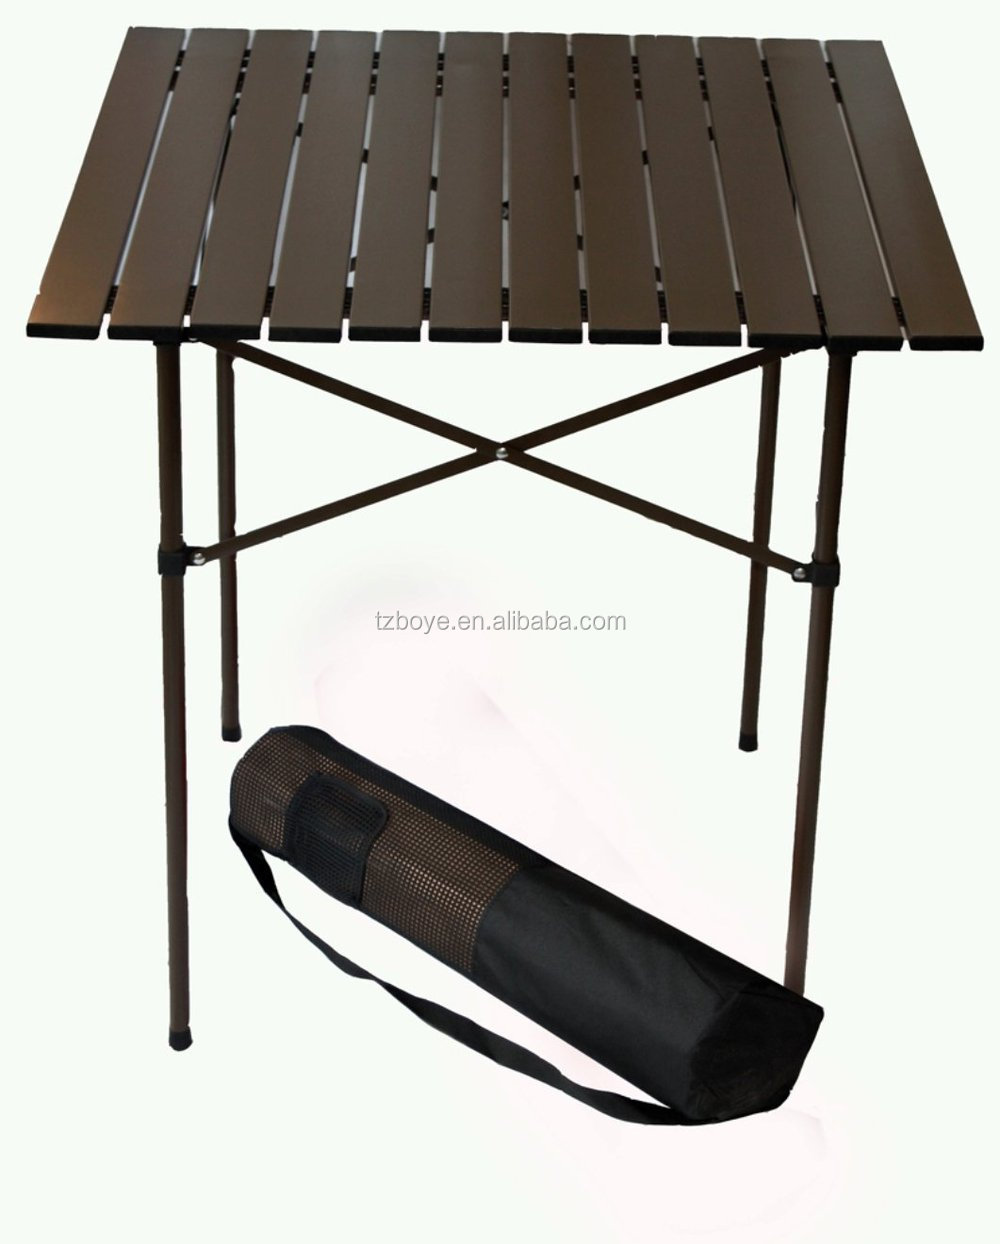 Table In A Bag Tall Aluminum Portable Table With Carrying Bag